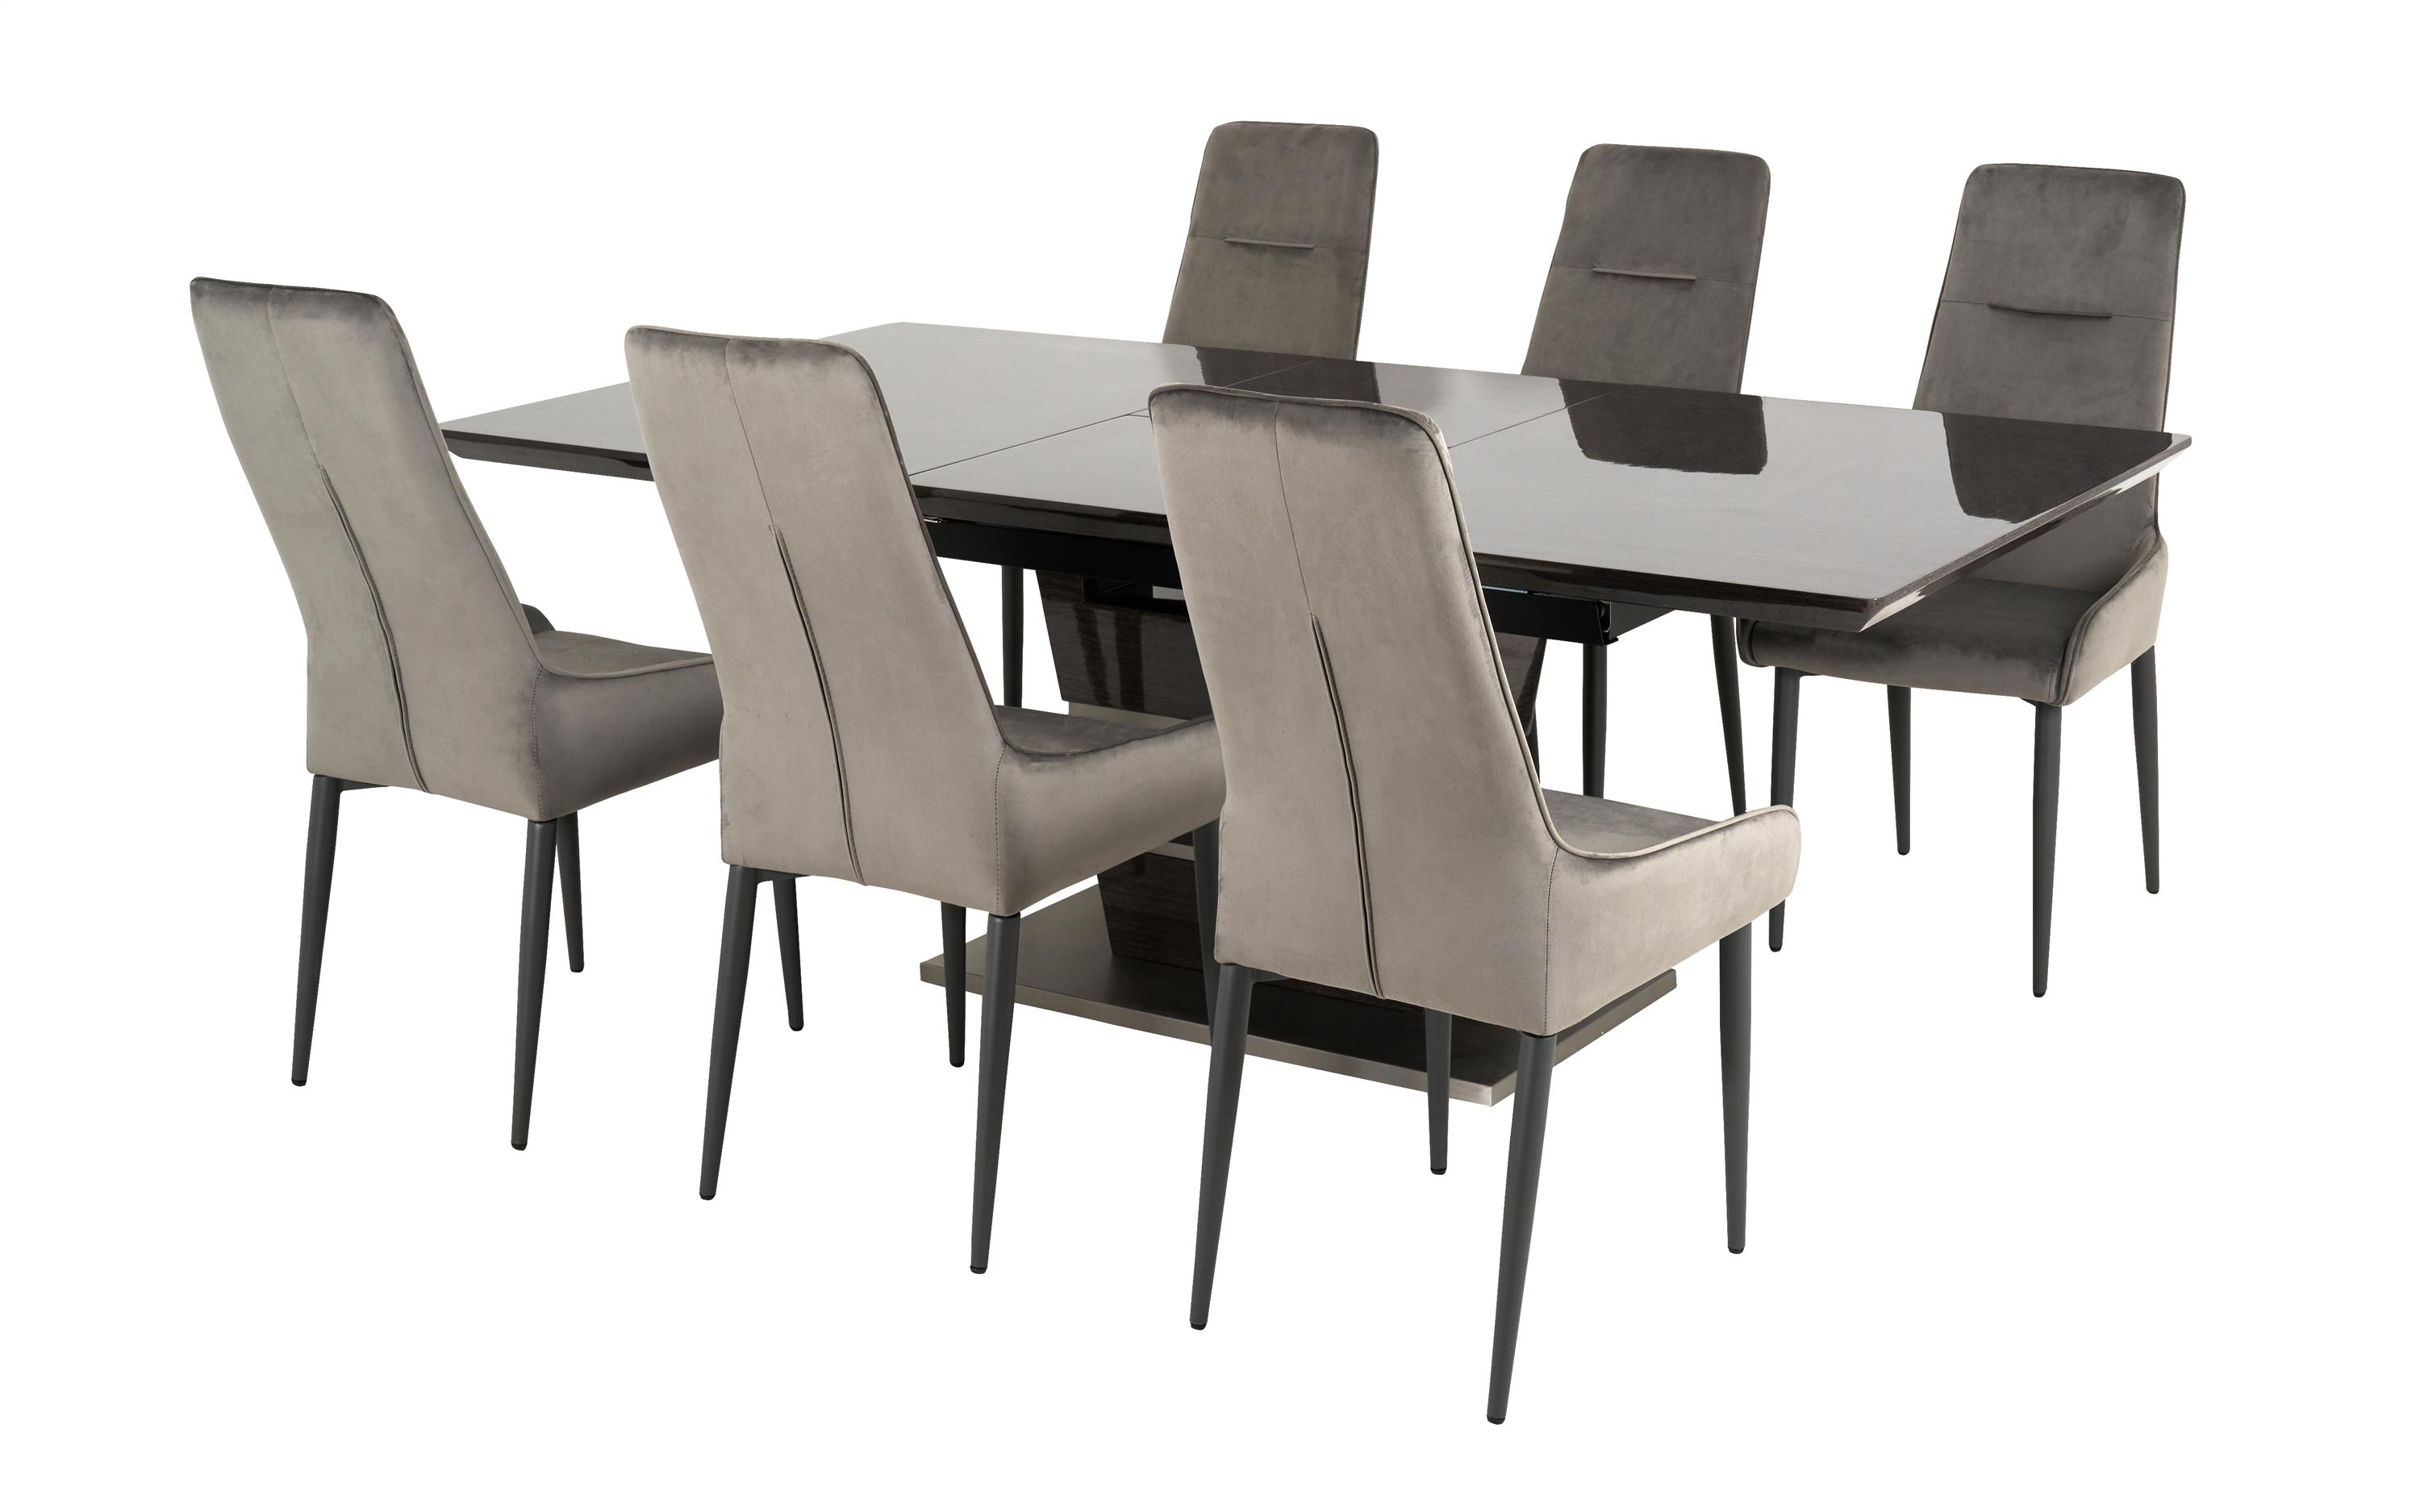 Sisi Italia San Pietro 1.6m Extending Dining Table & 6 Arm Chairs